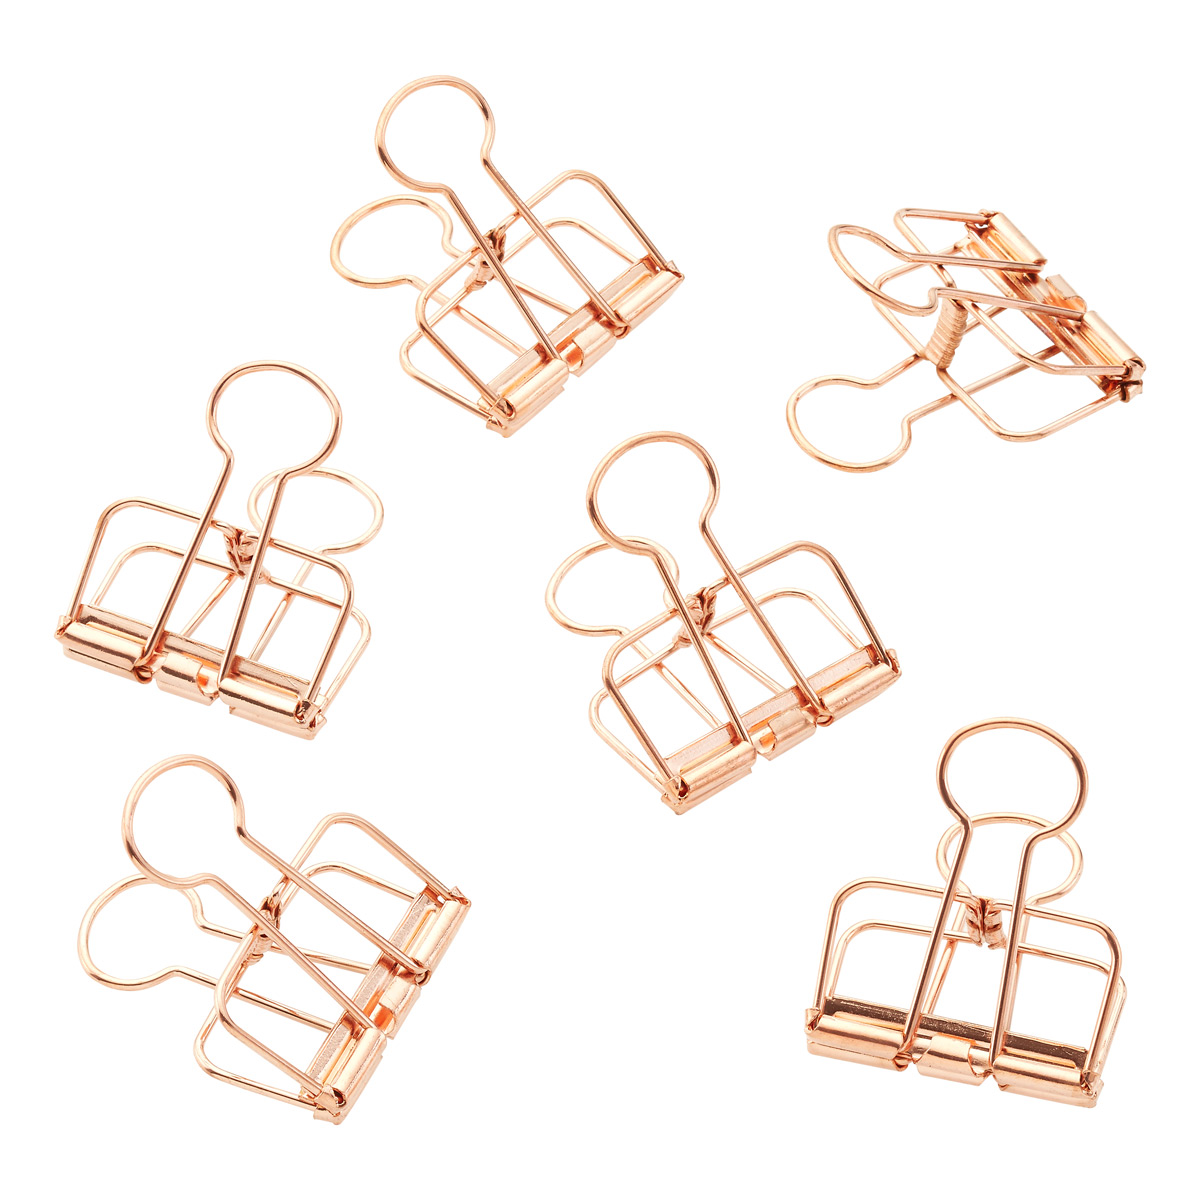 Wire Binder Clips